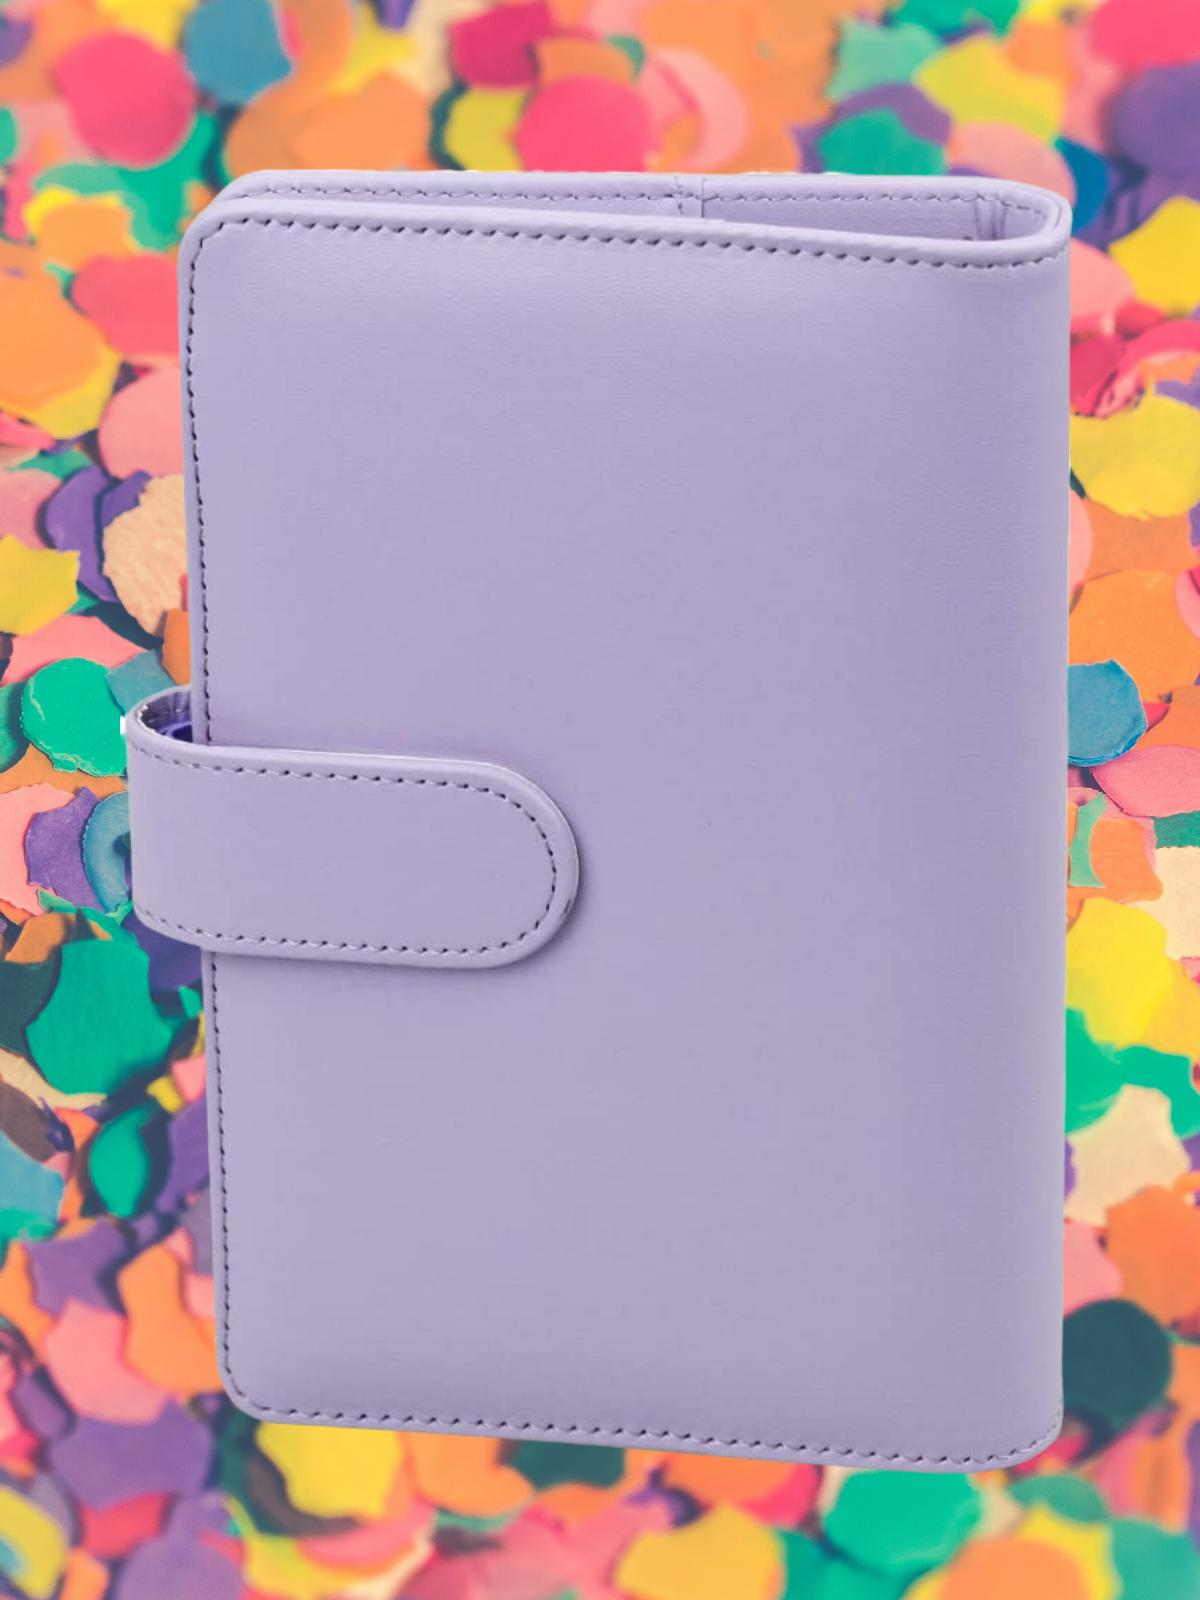 Leather money manager, coupon organizer